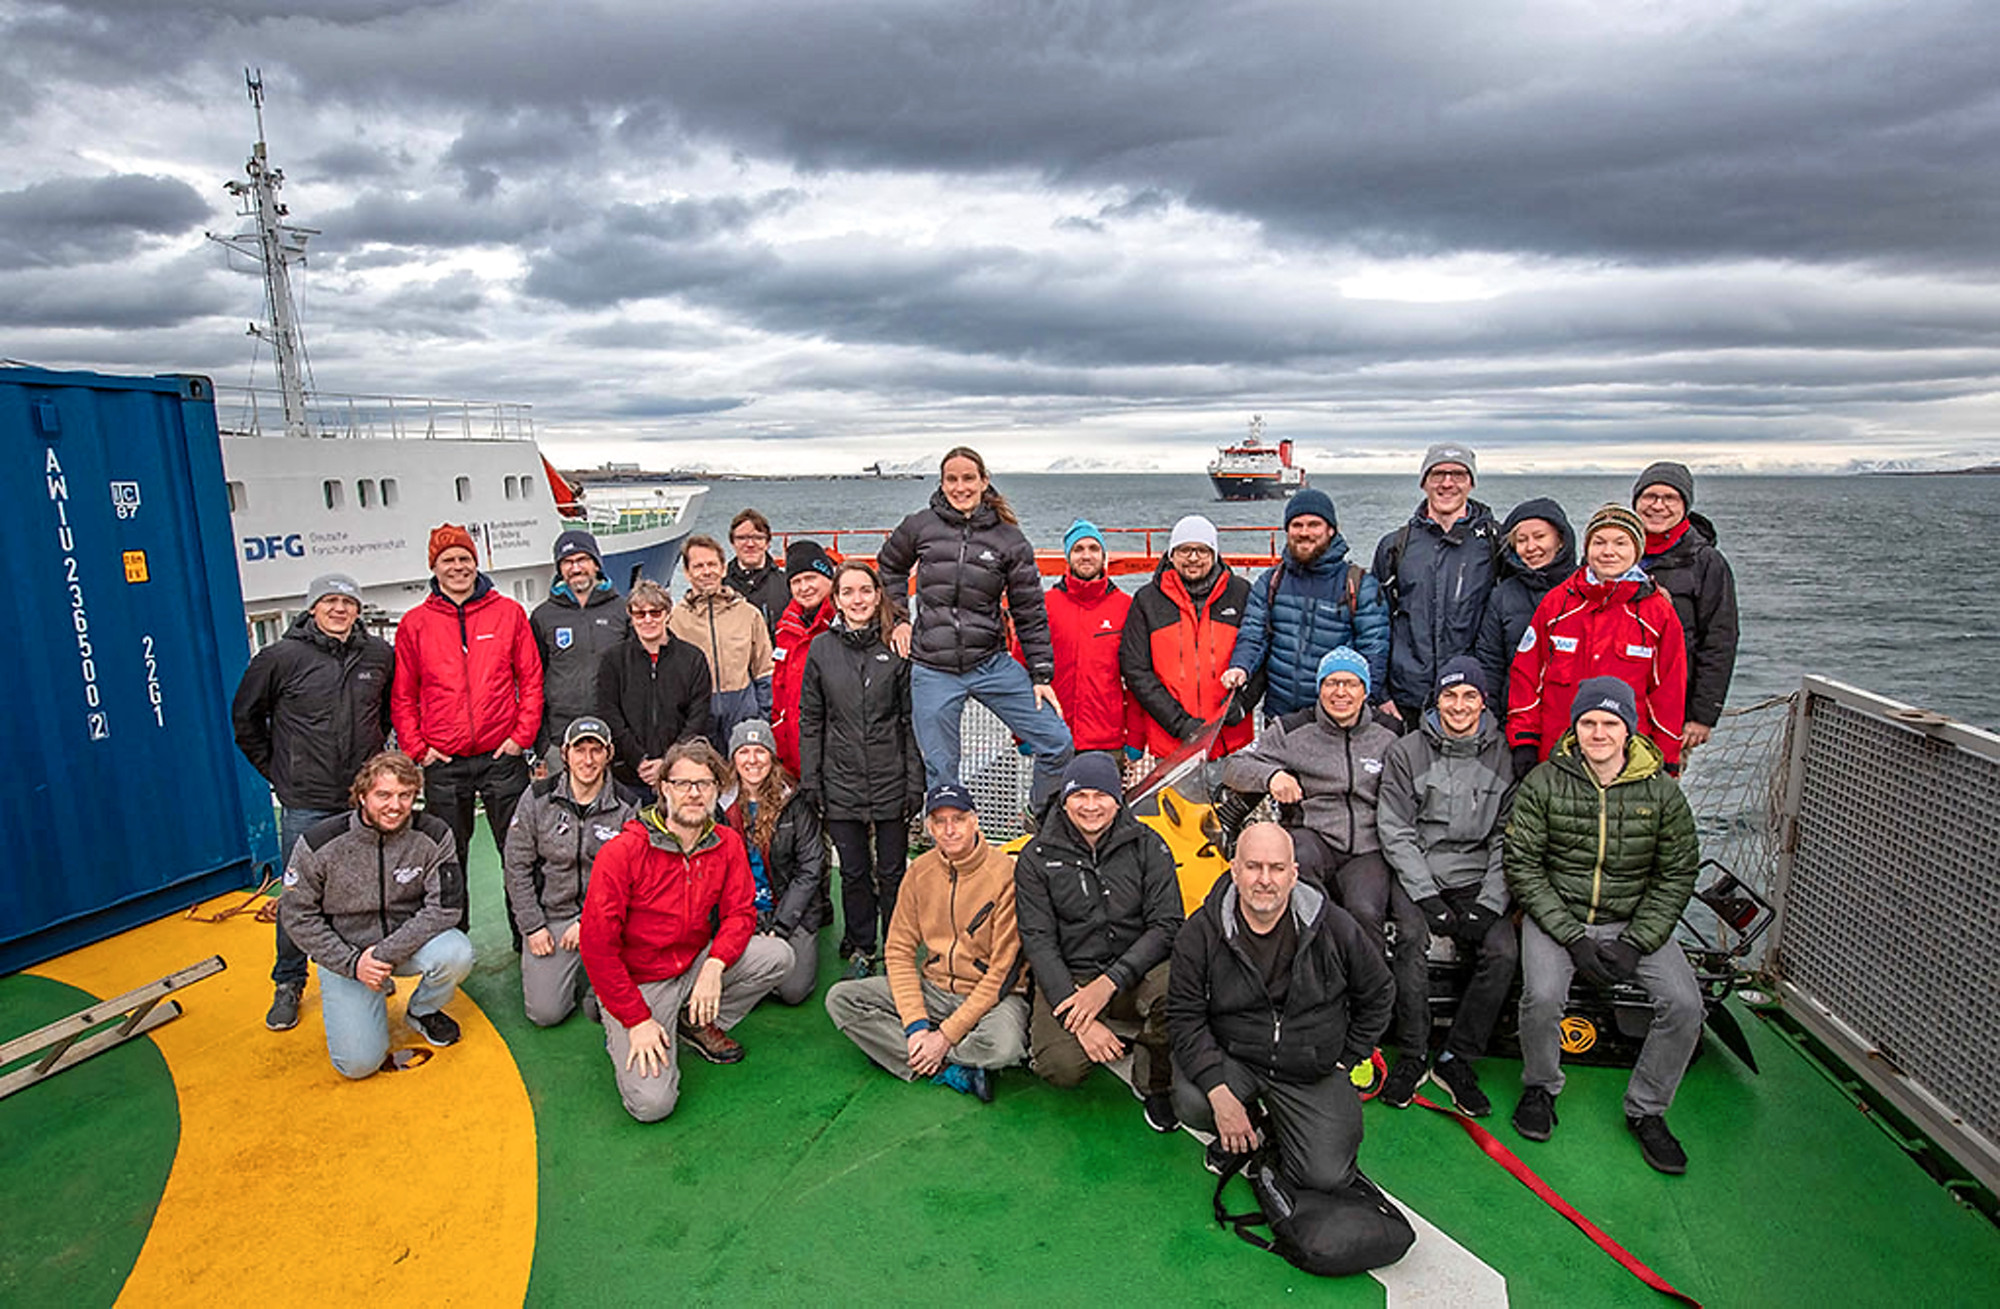 Team ATMOS during the exchange off Spitsbergen. In the transport section IV, 15 researchers are mainly concerned with the investigation of processes in the atmosphere, including two from TROPOS and one from the University of Leipzig. Photo: Lianna Nixon, University of Colorado